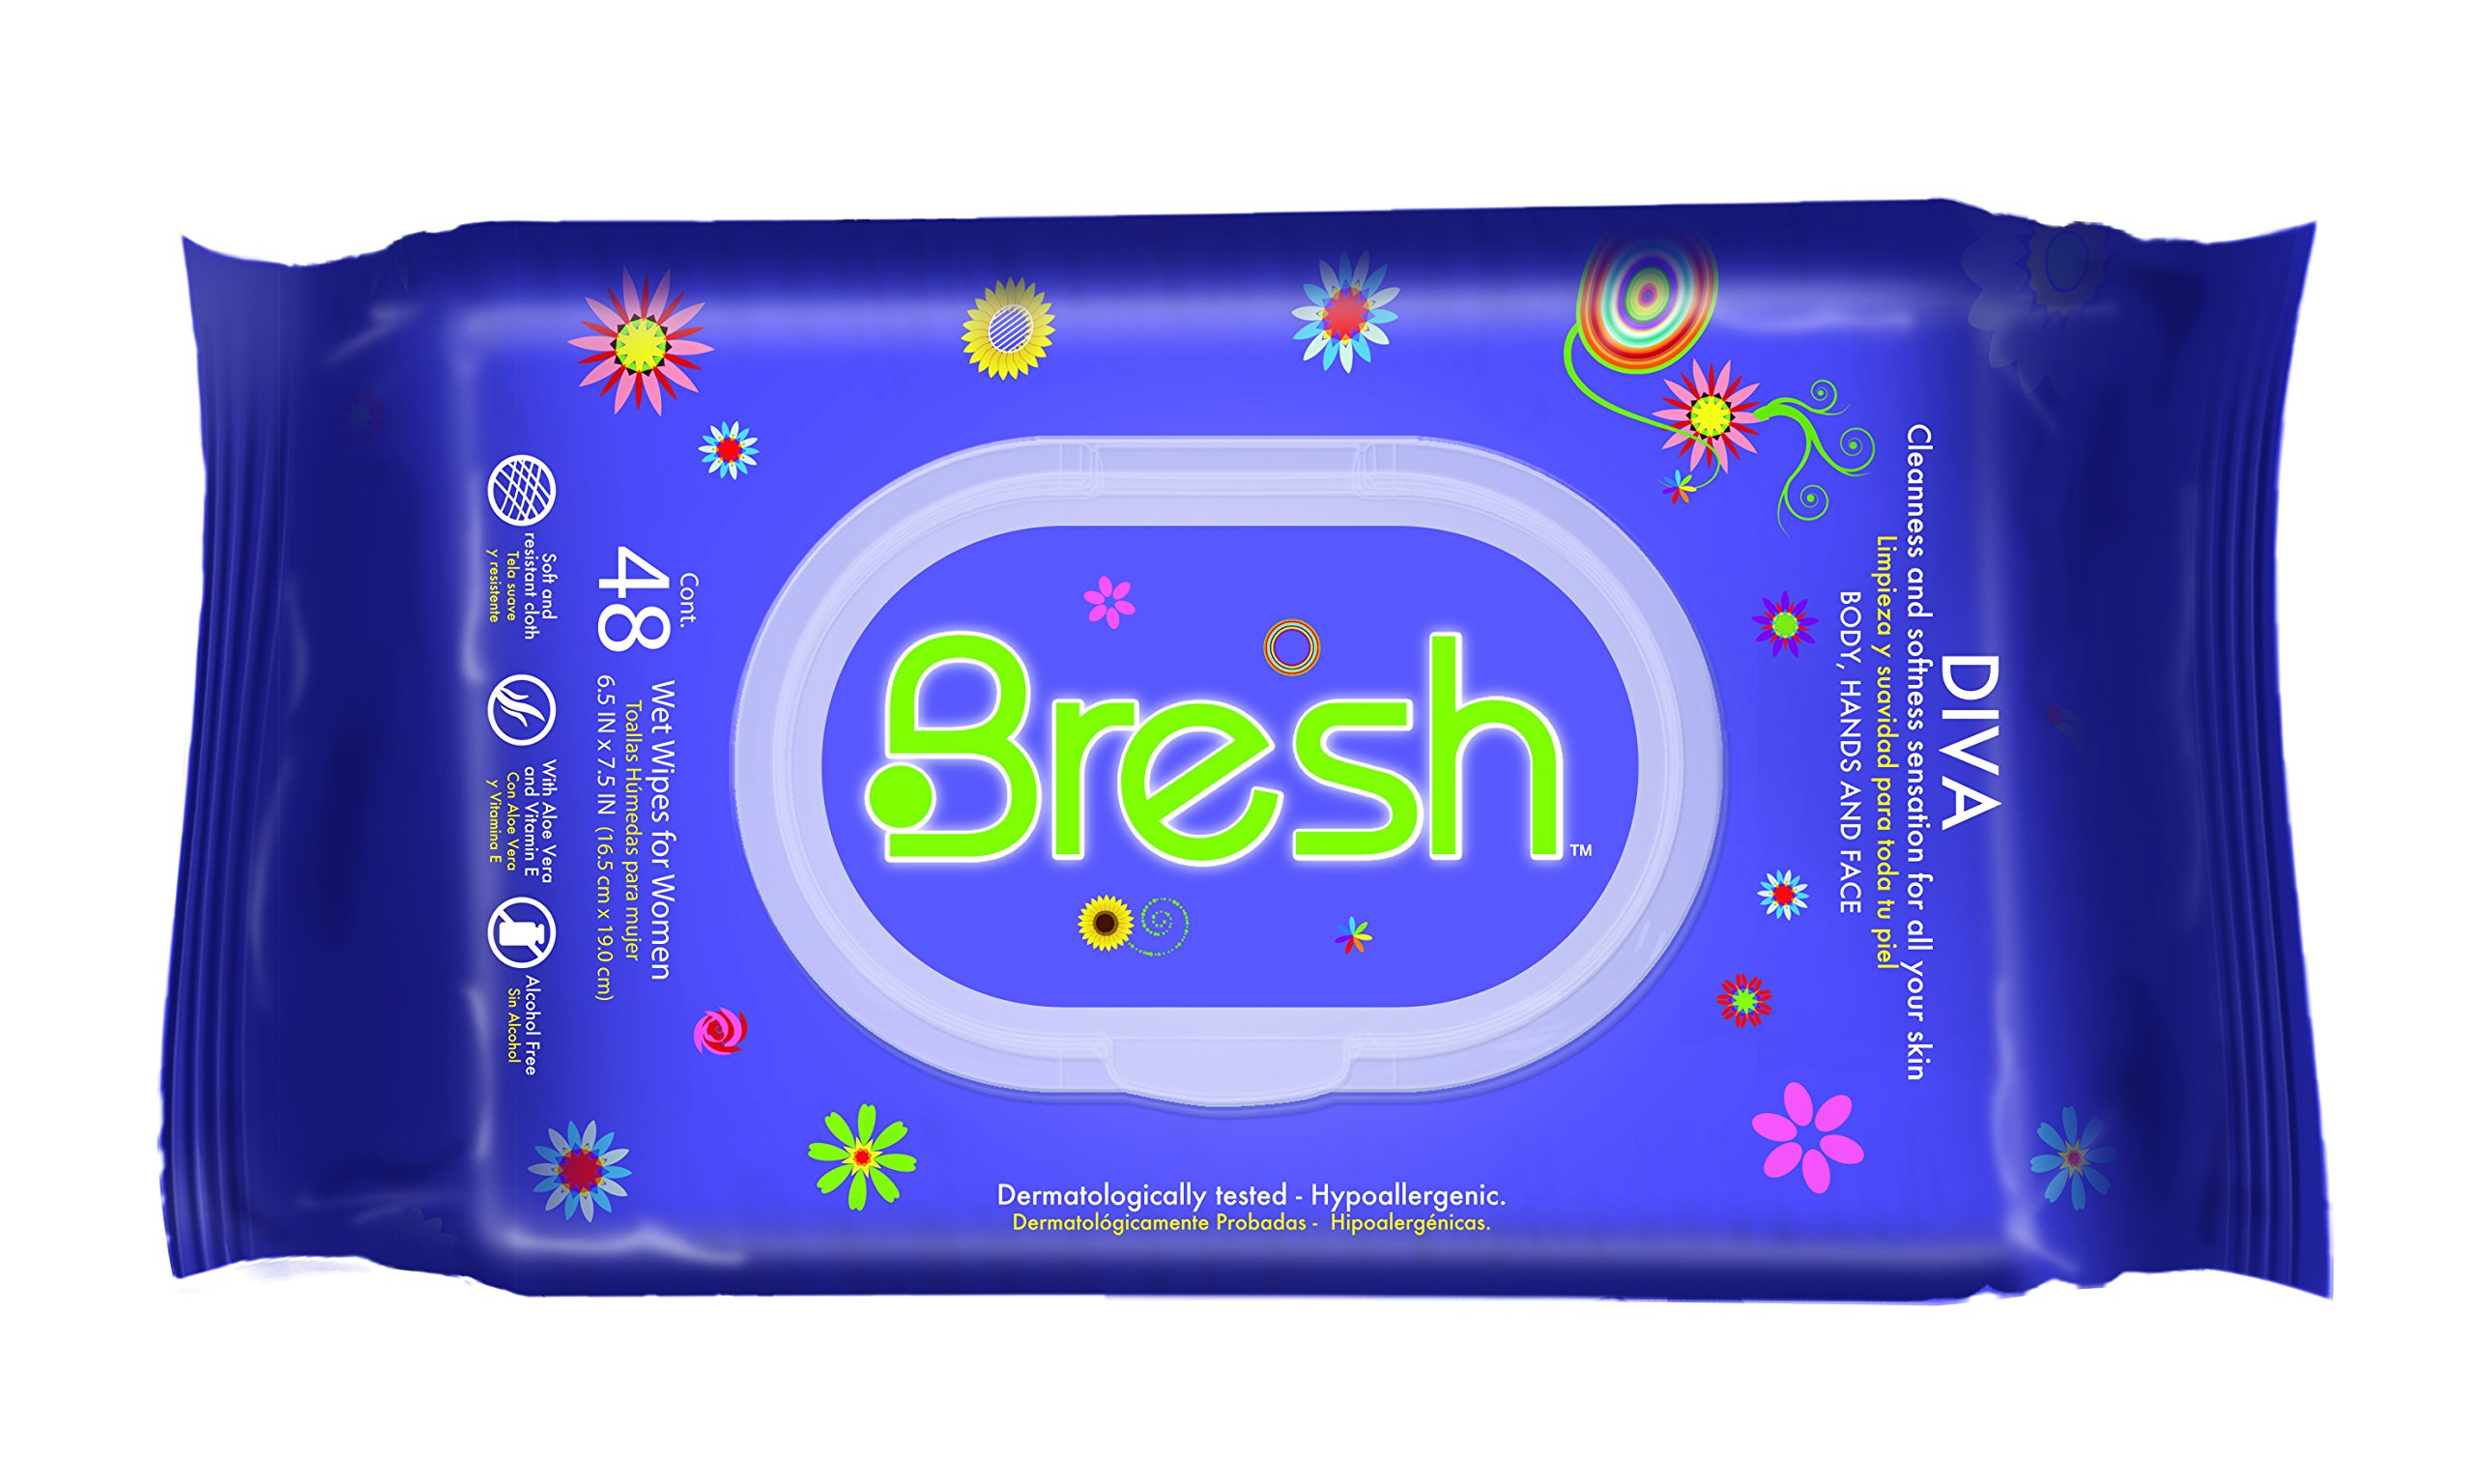 Bresh Wipes for Women - Hypoallergenic and pH Balanced Wet Wipes - Ideal after Sports, Traveling, Car, Purse and Toilet too - Diva Fragrance. Keep your Body, Hands and Face fresh.